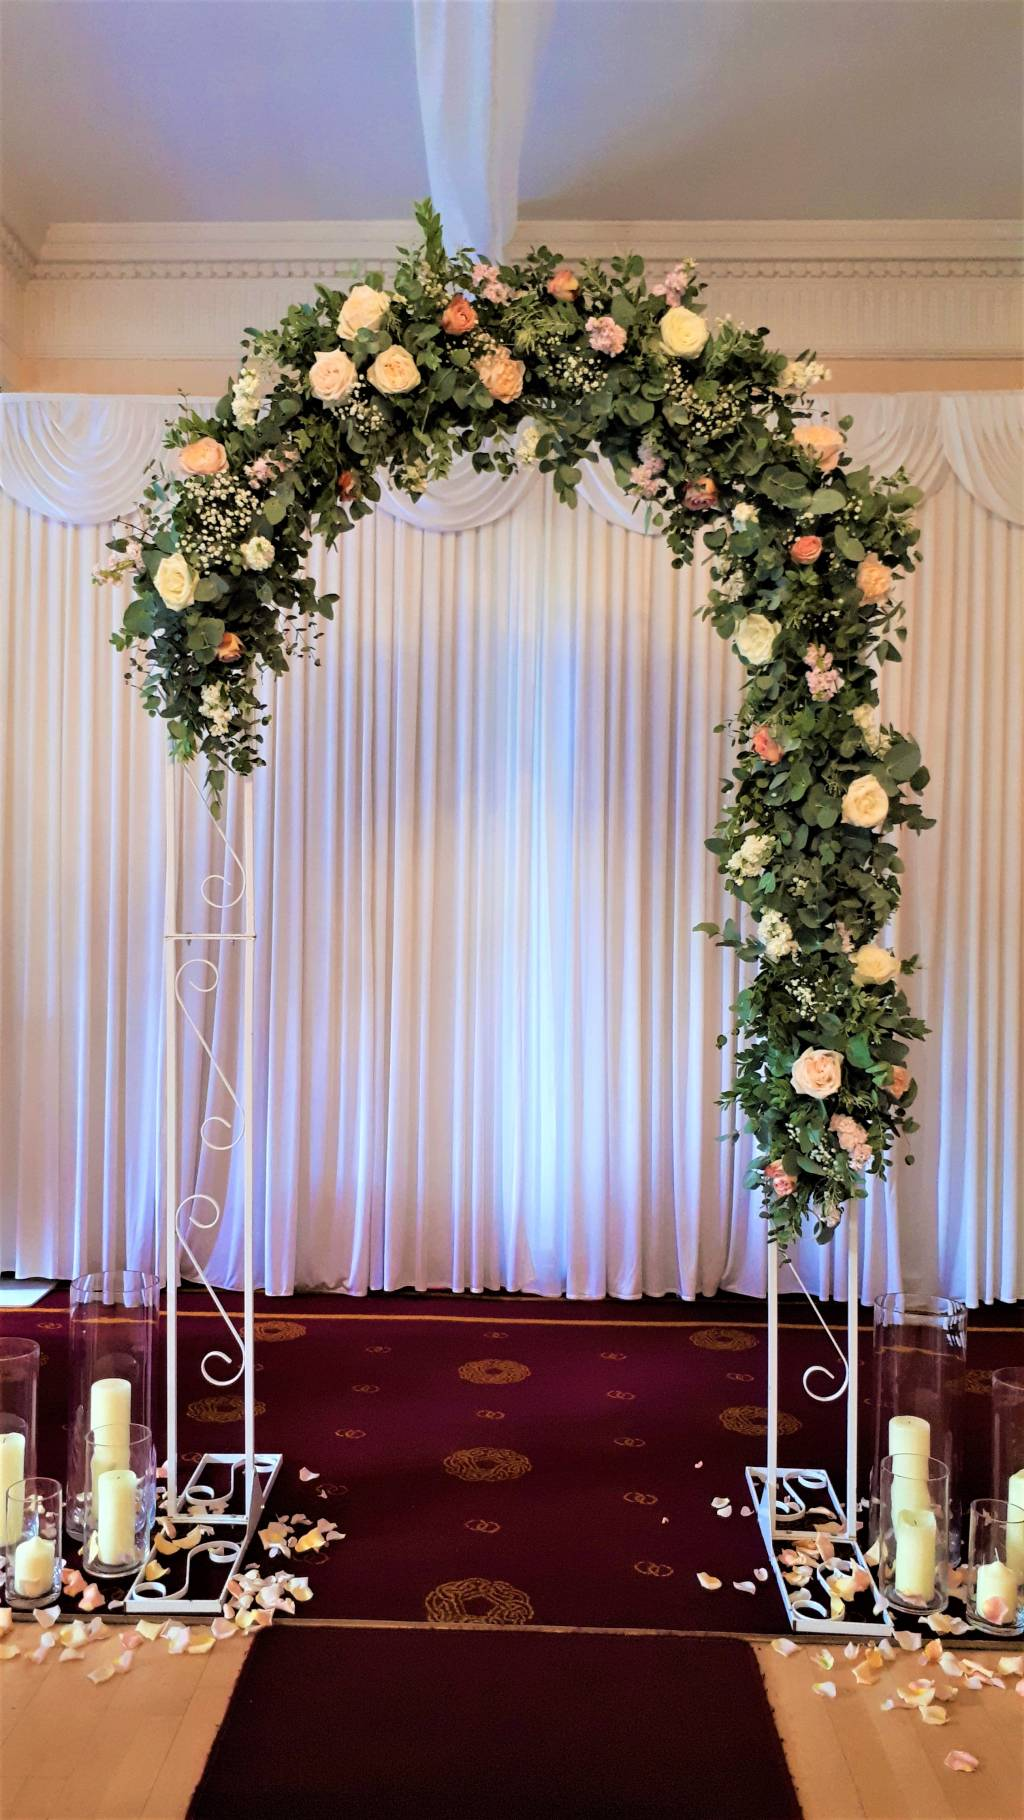 Image of a wedding flower arch